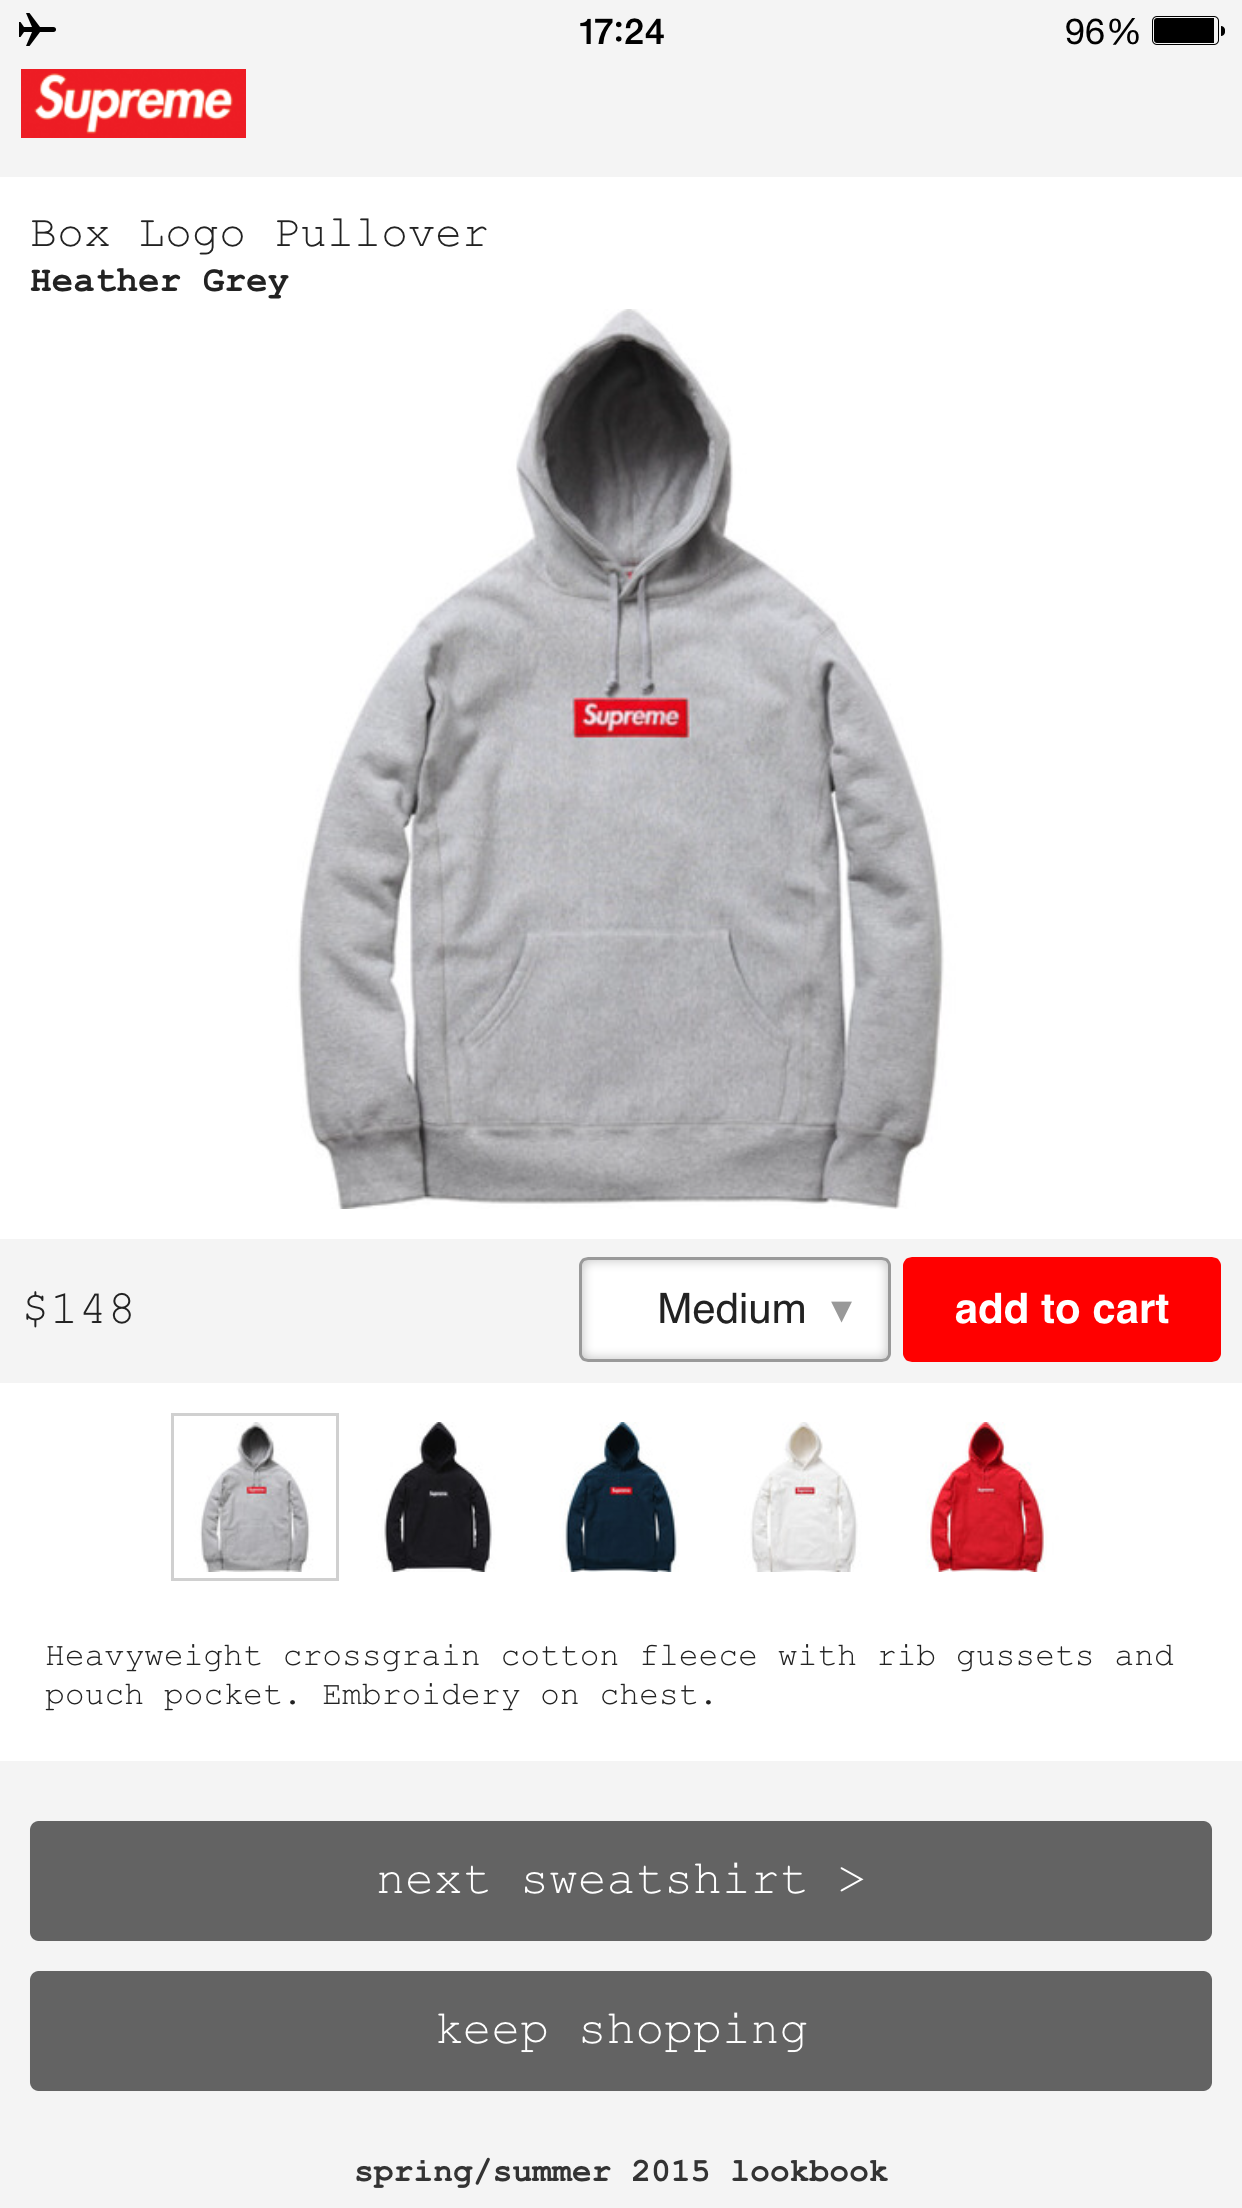 Supreme Screenshot